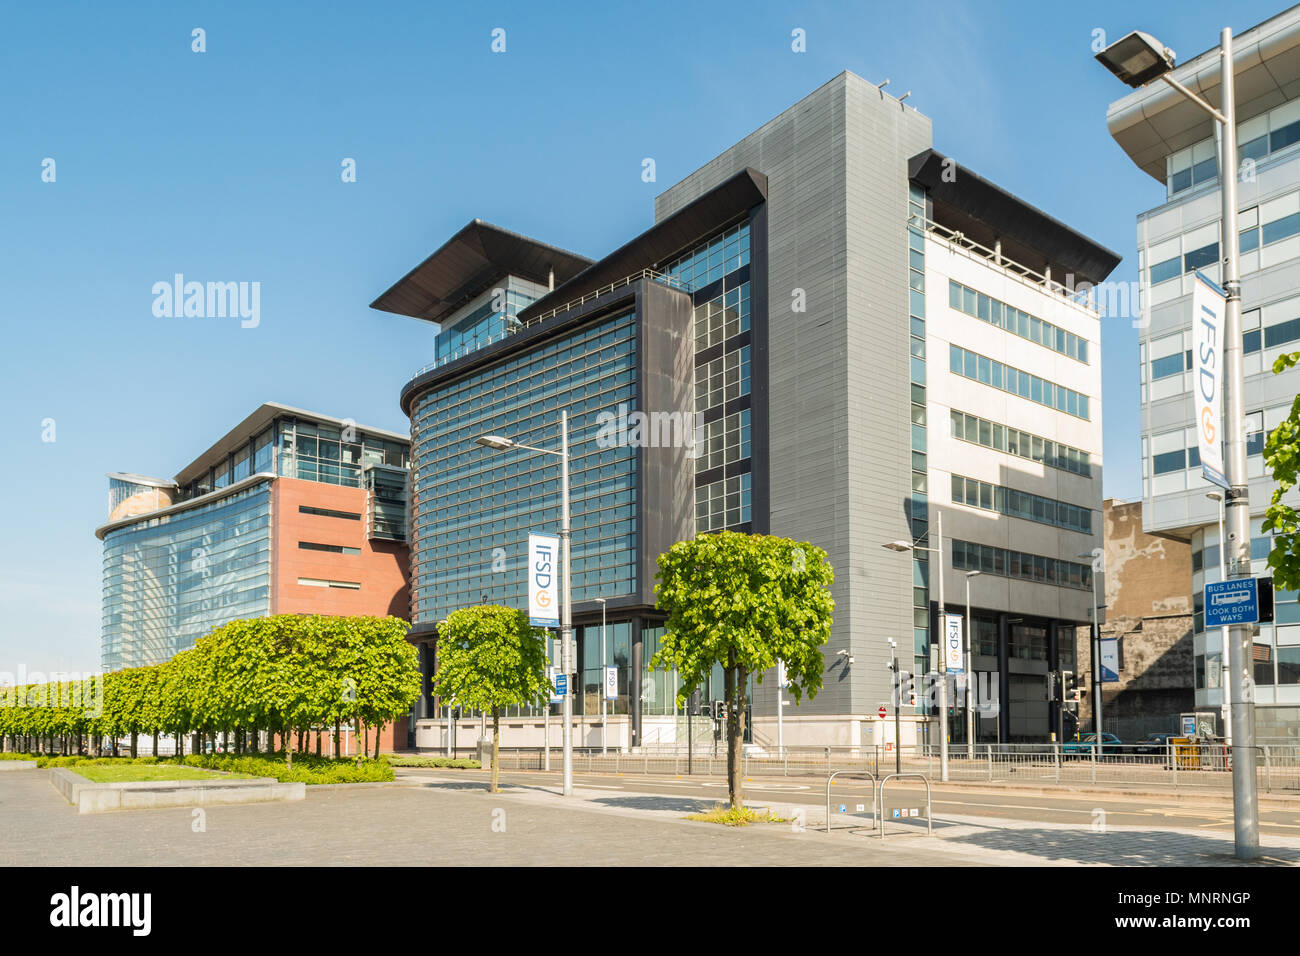 Glasgow International Financial Services District IFSD, 150 und 200 Broomielaw, Glasgow, Schottland, Großbritannien Stockbild